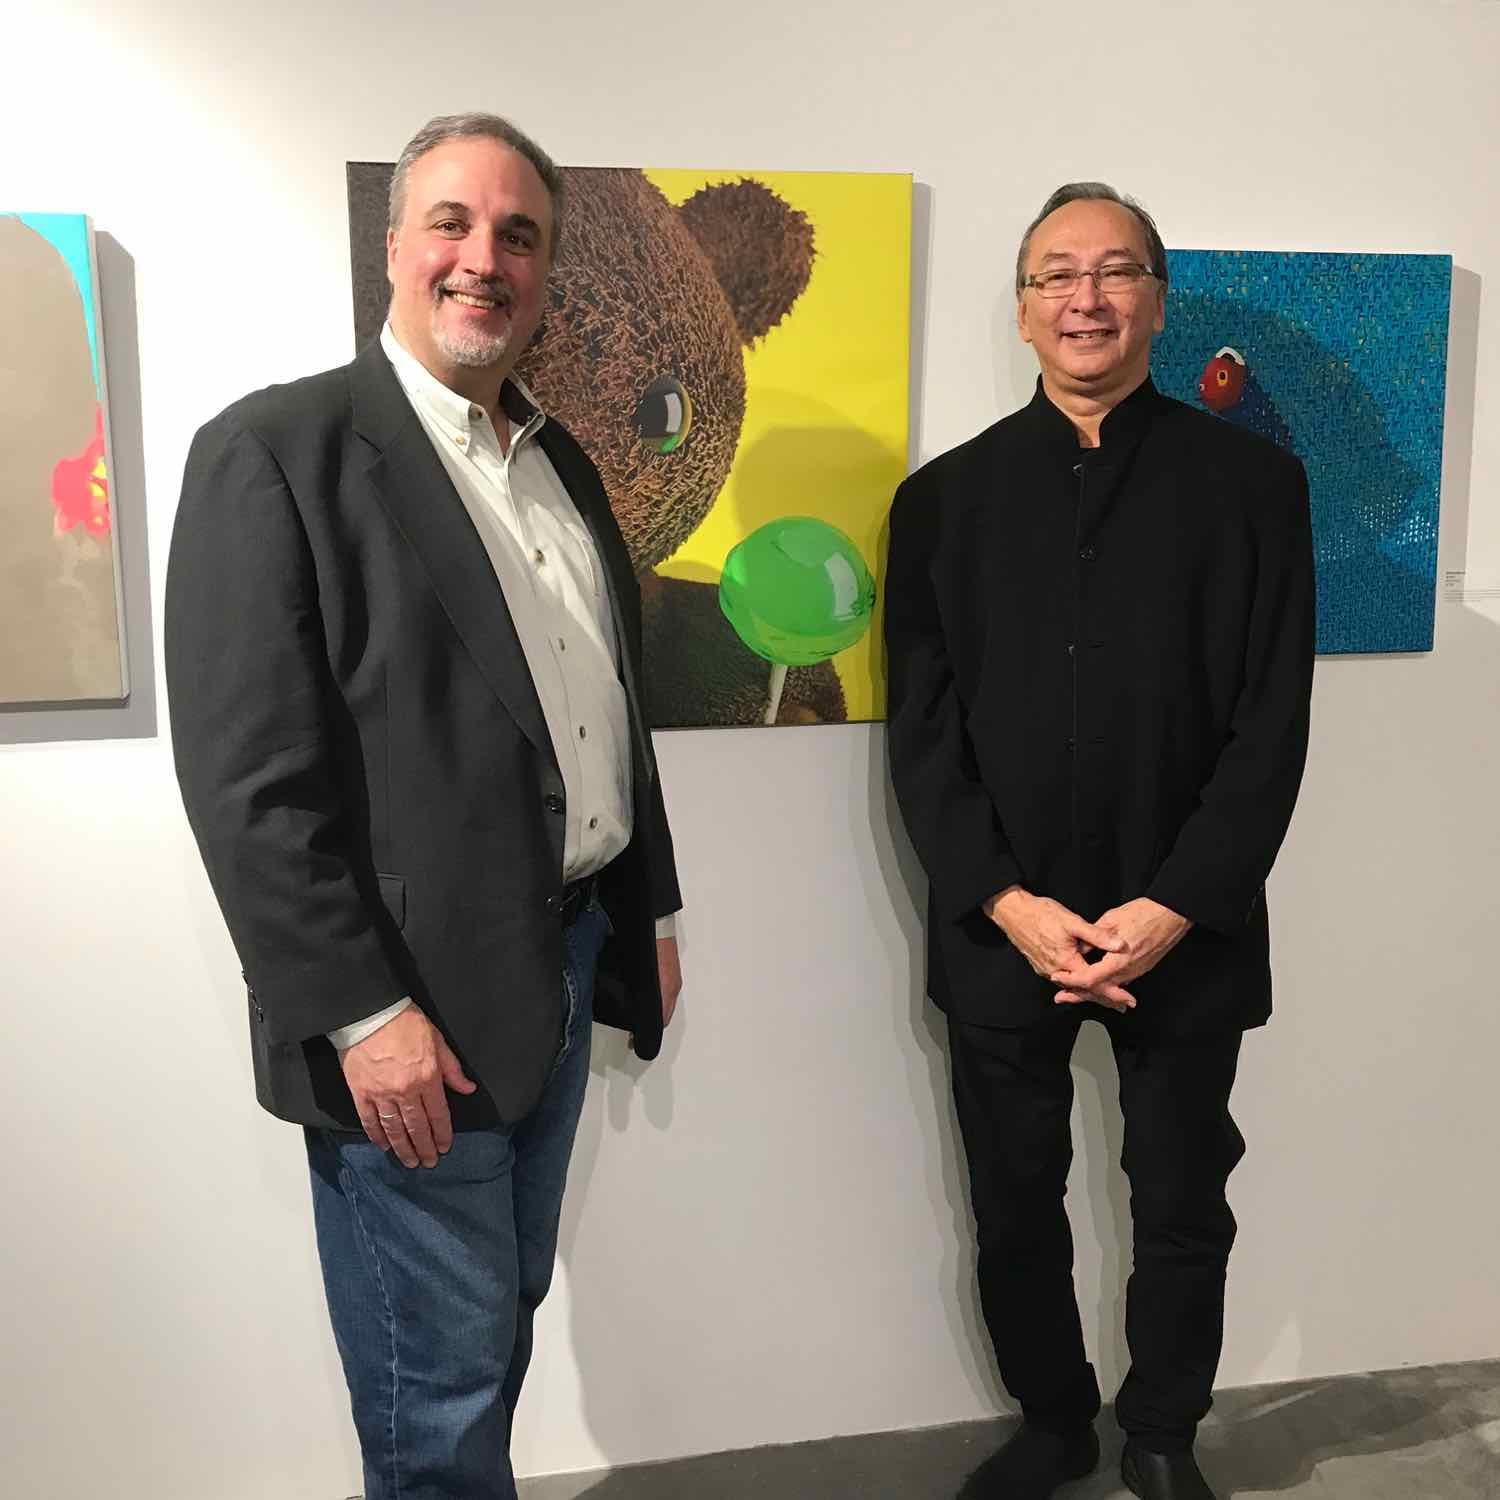 Me and Jurist Bill Stelling, from Kelley Stelling Contemporary in front of Sharing #1